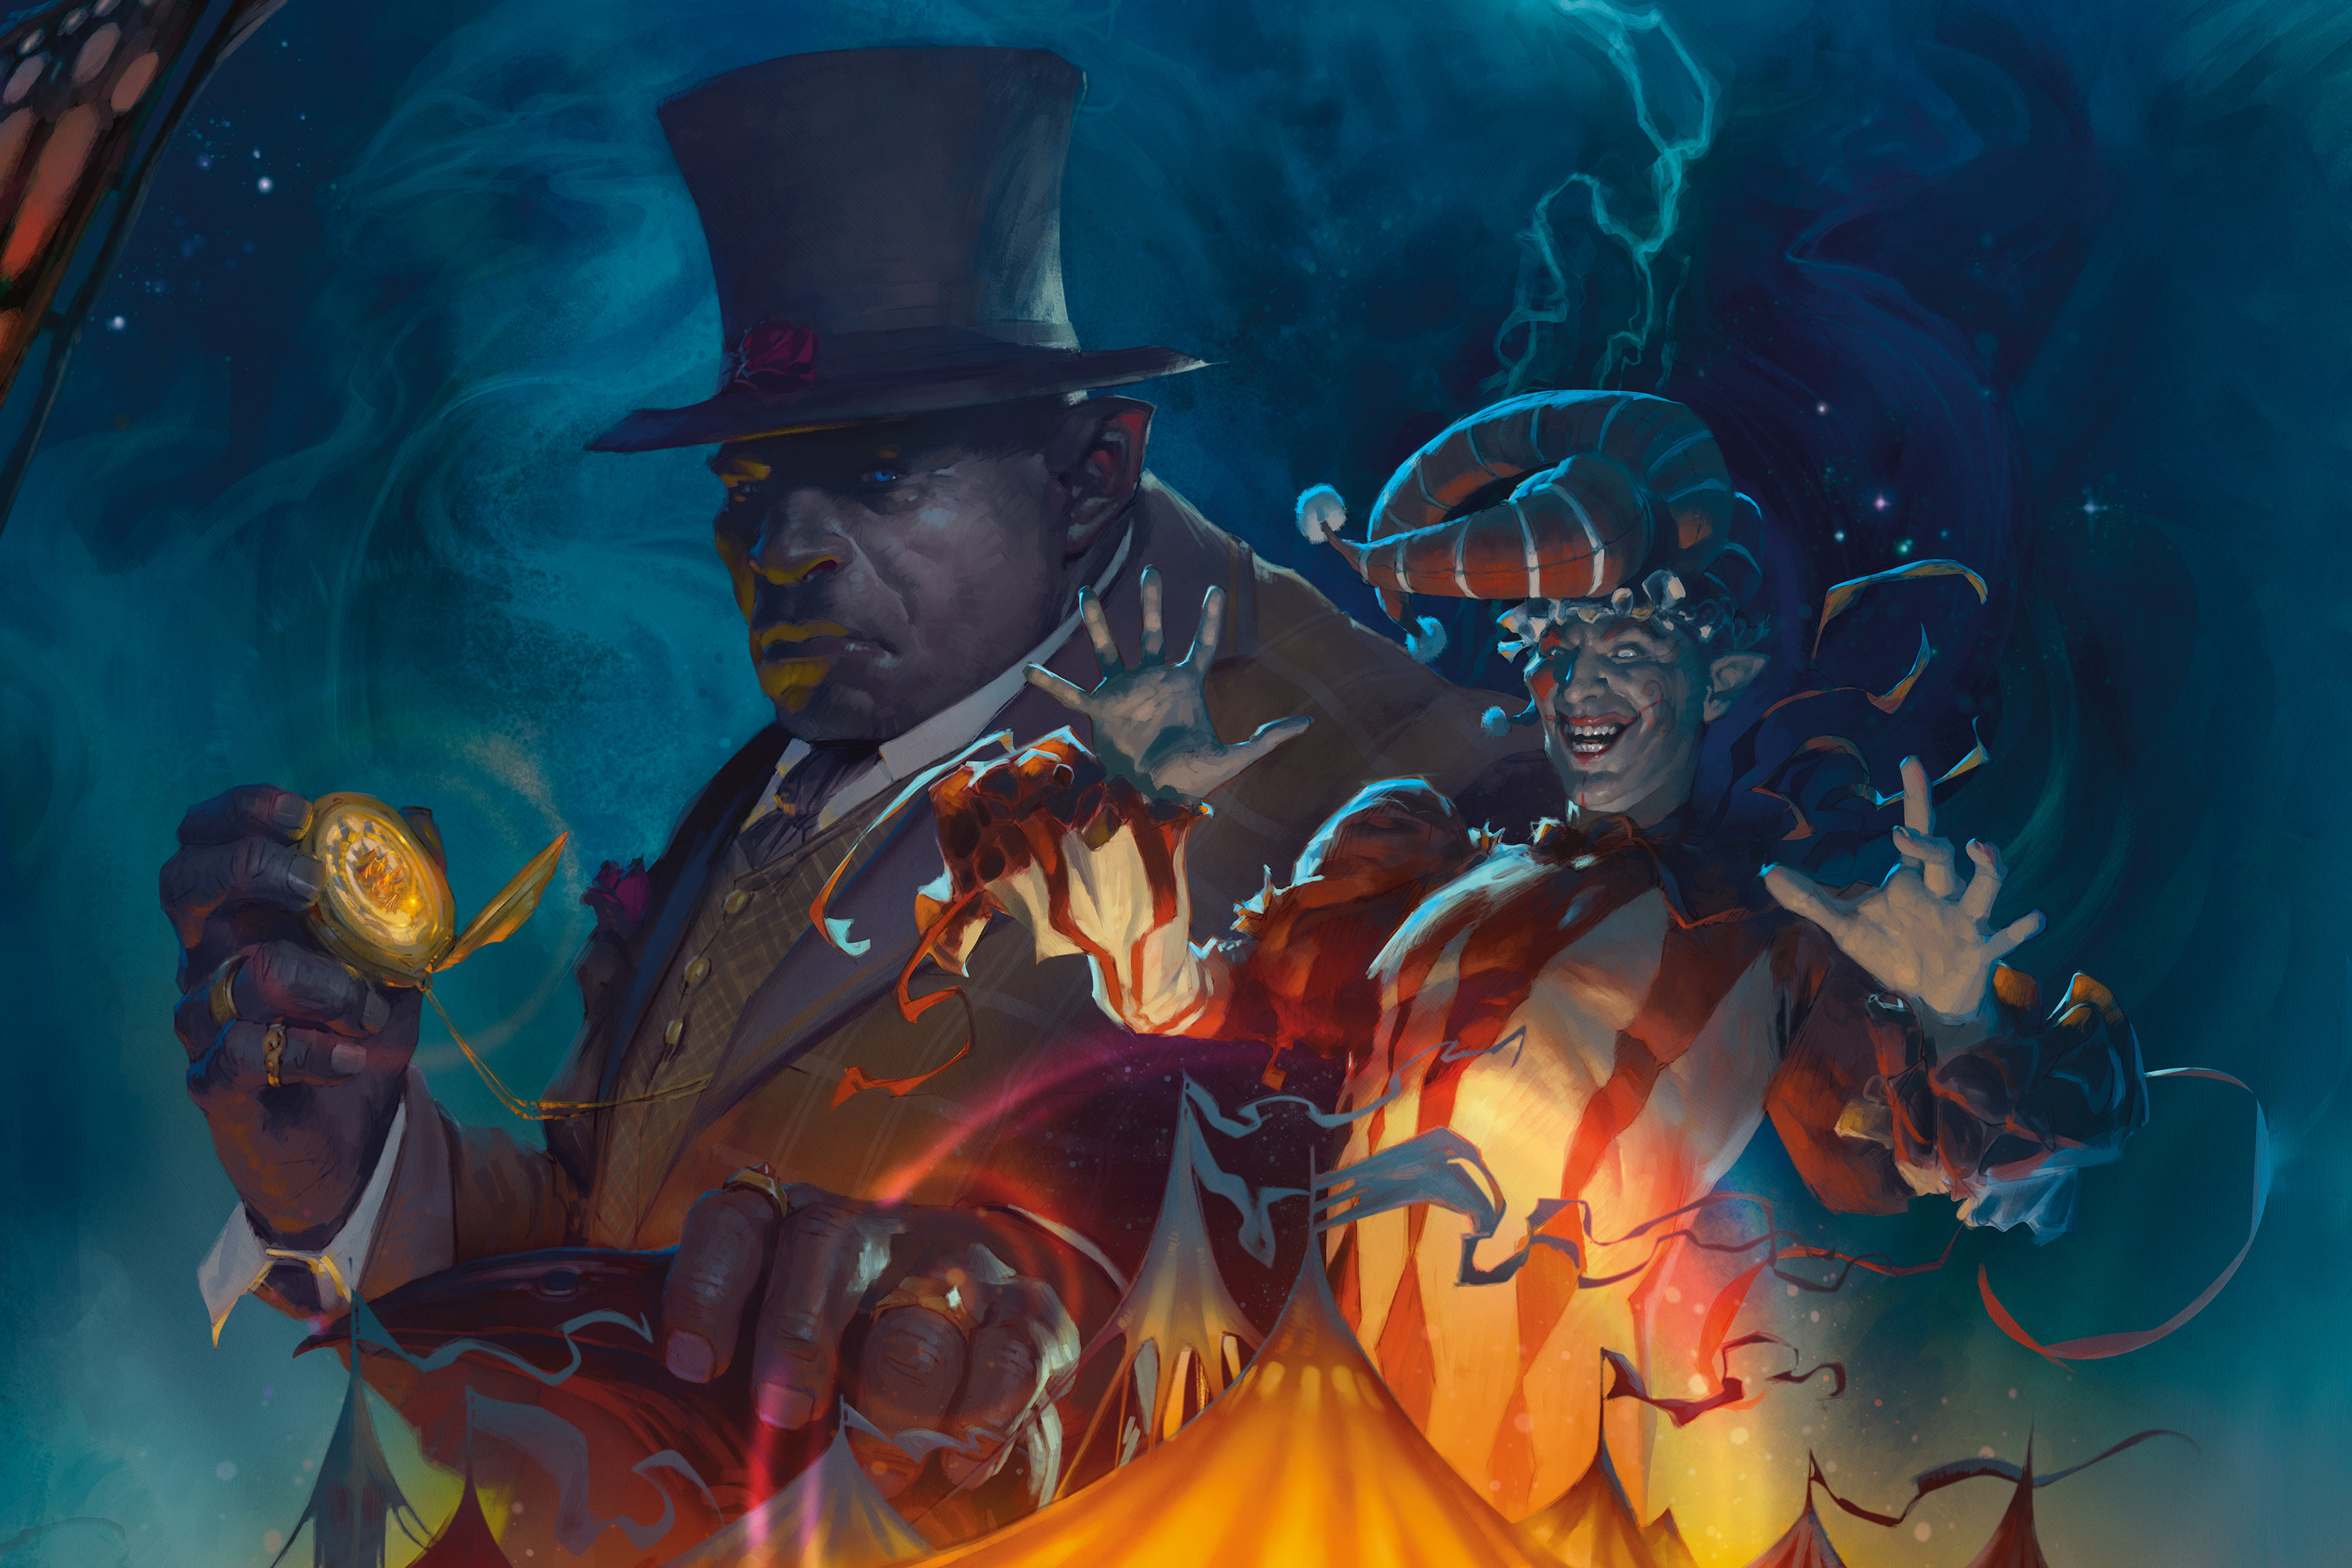 An orc in a top hat with a pocket watch stands next to a clown.